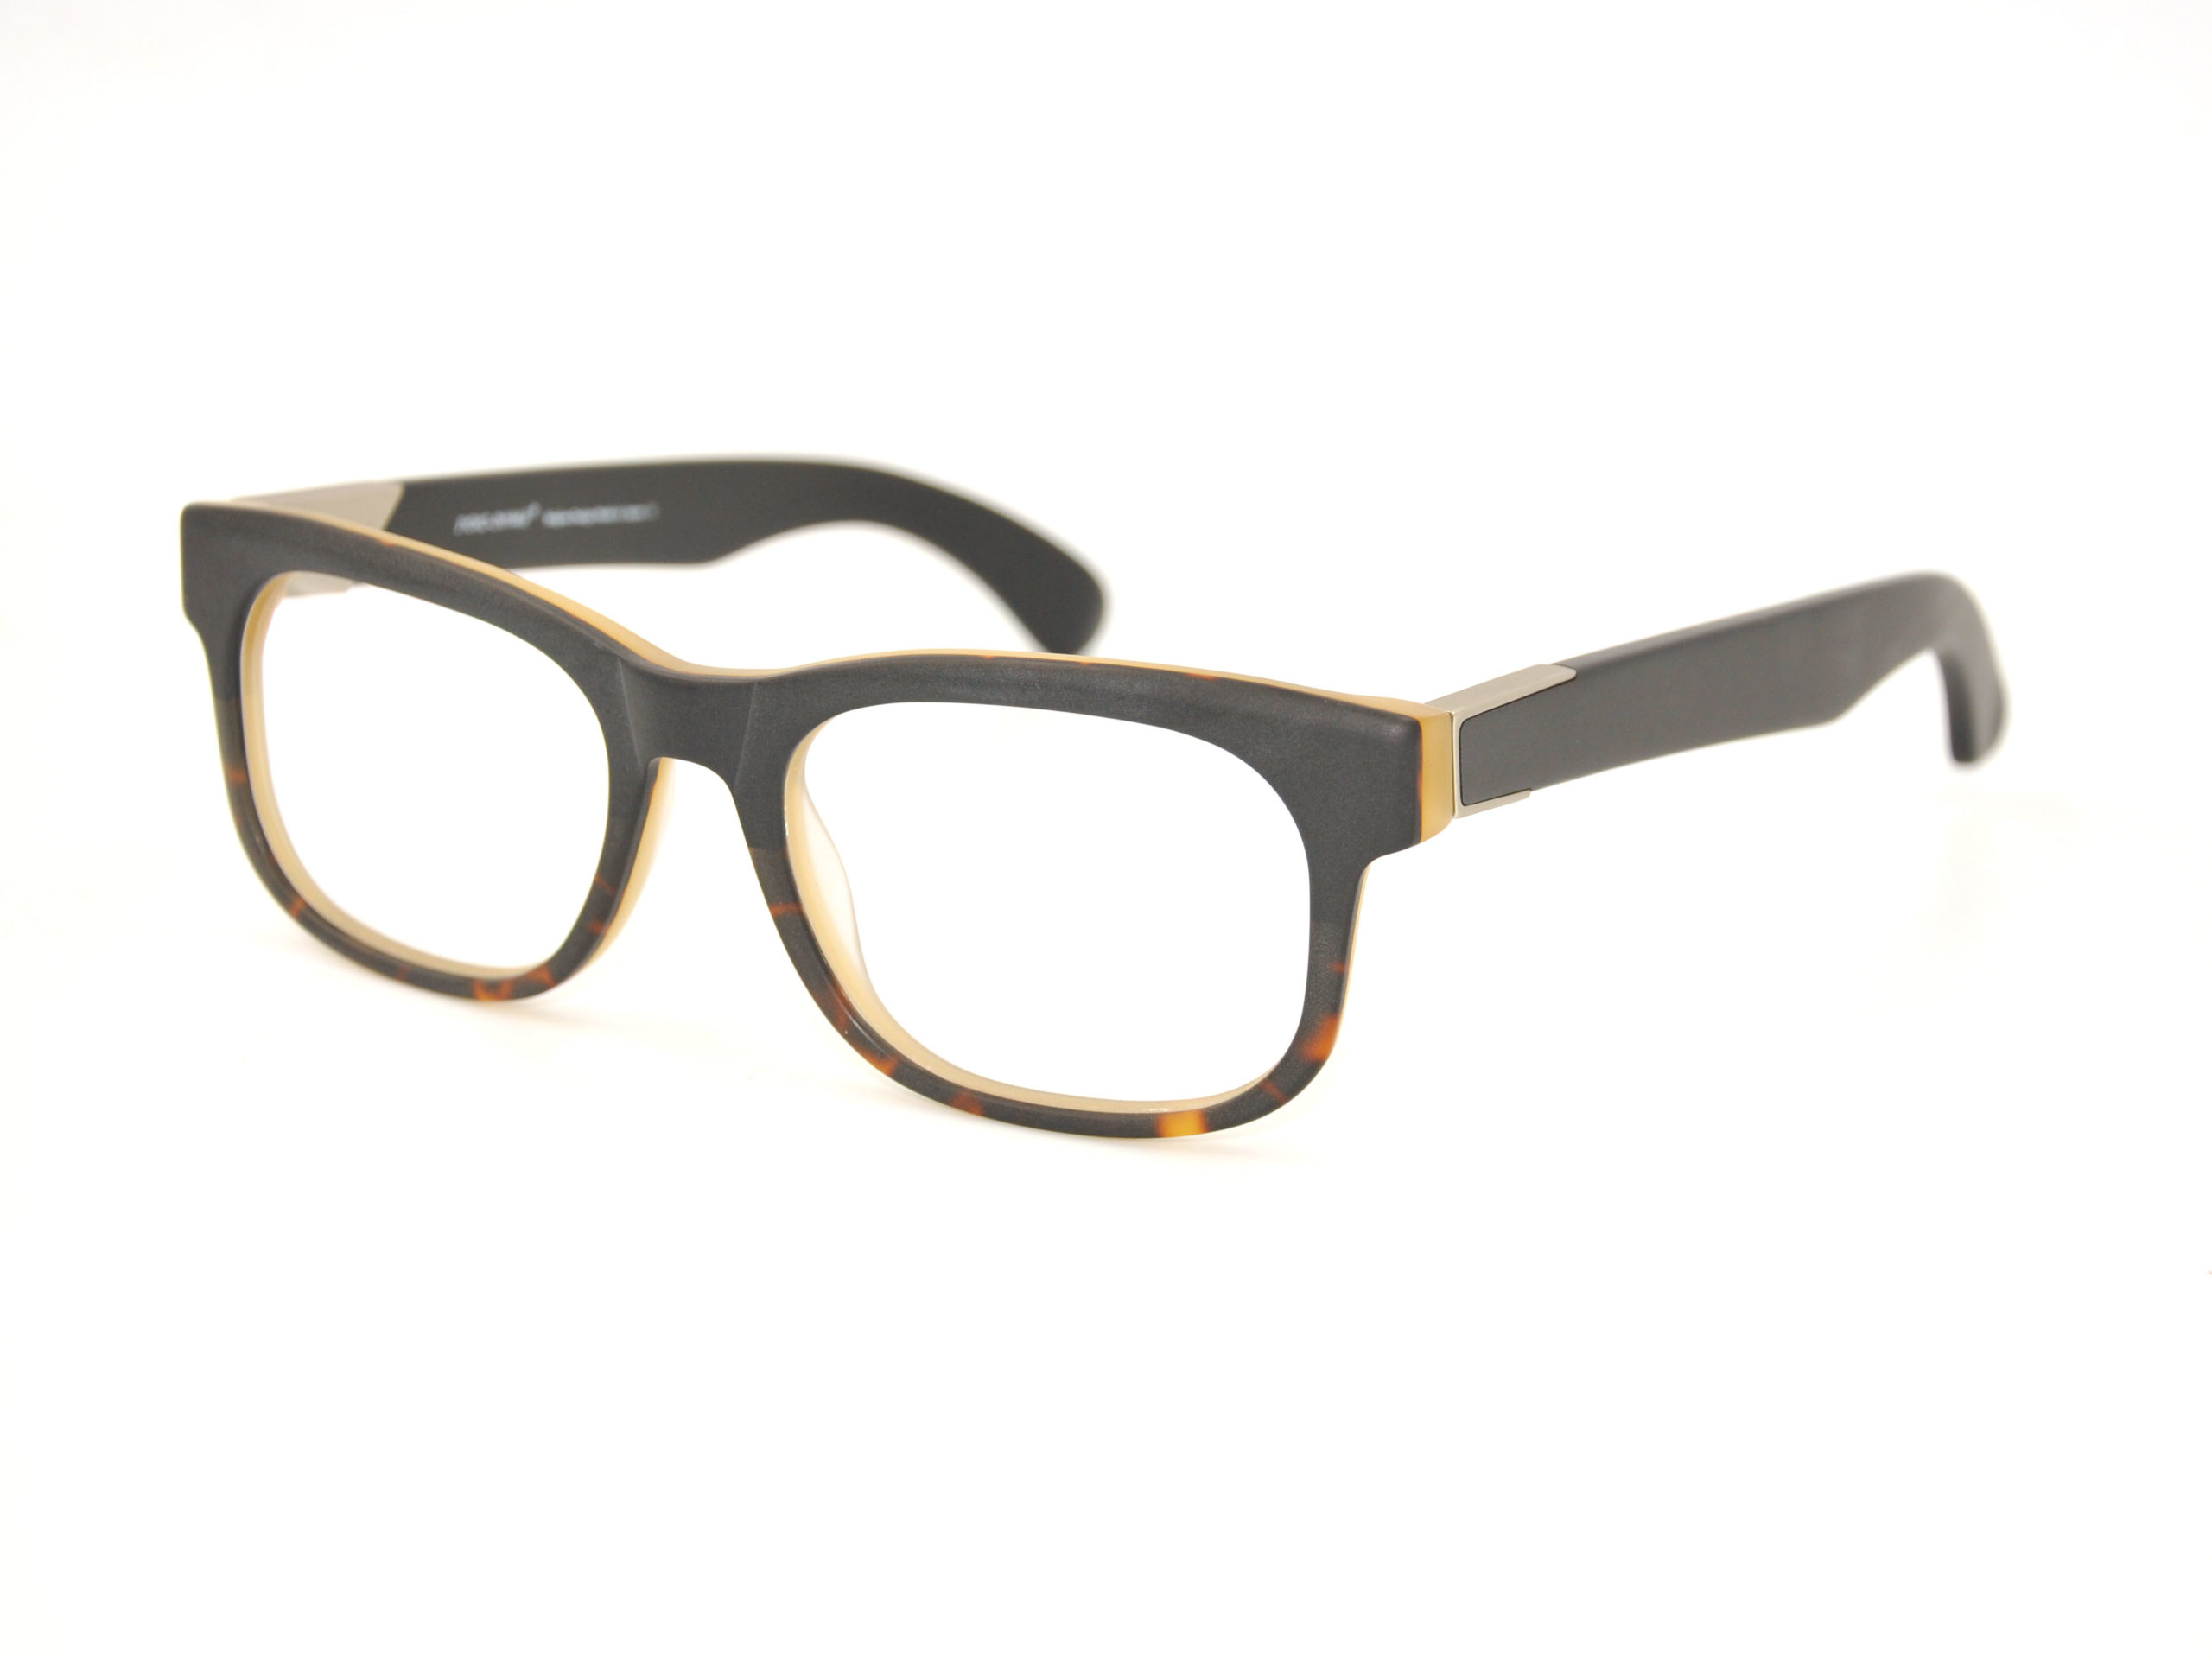 IYOKO INYAKE IY627 12A UNISEX Prescription Glasses 2018